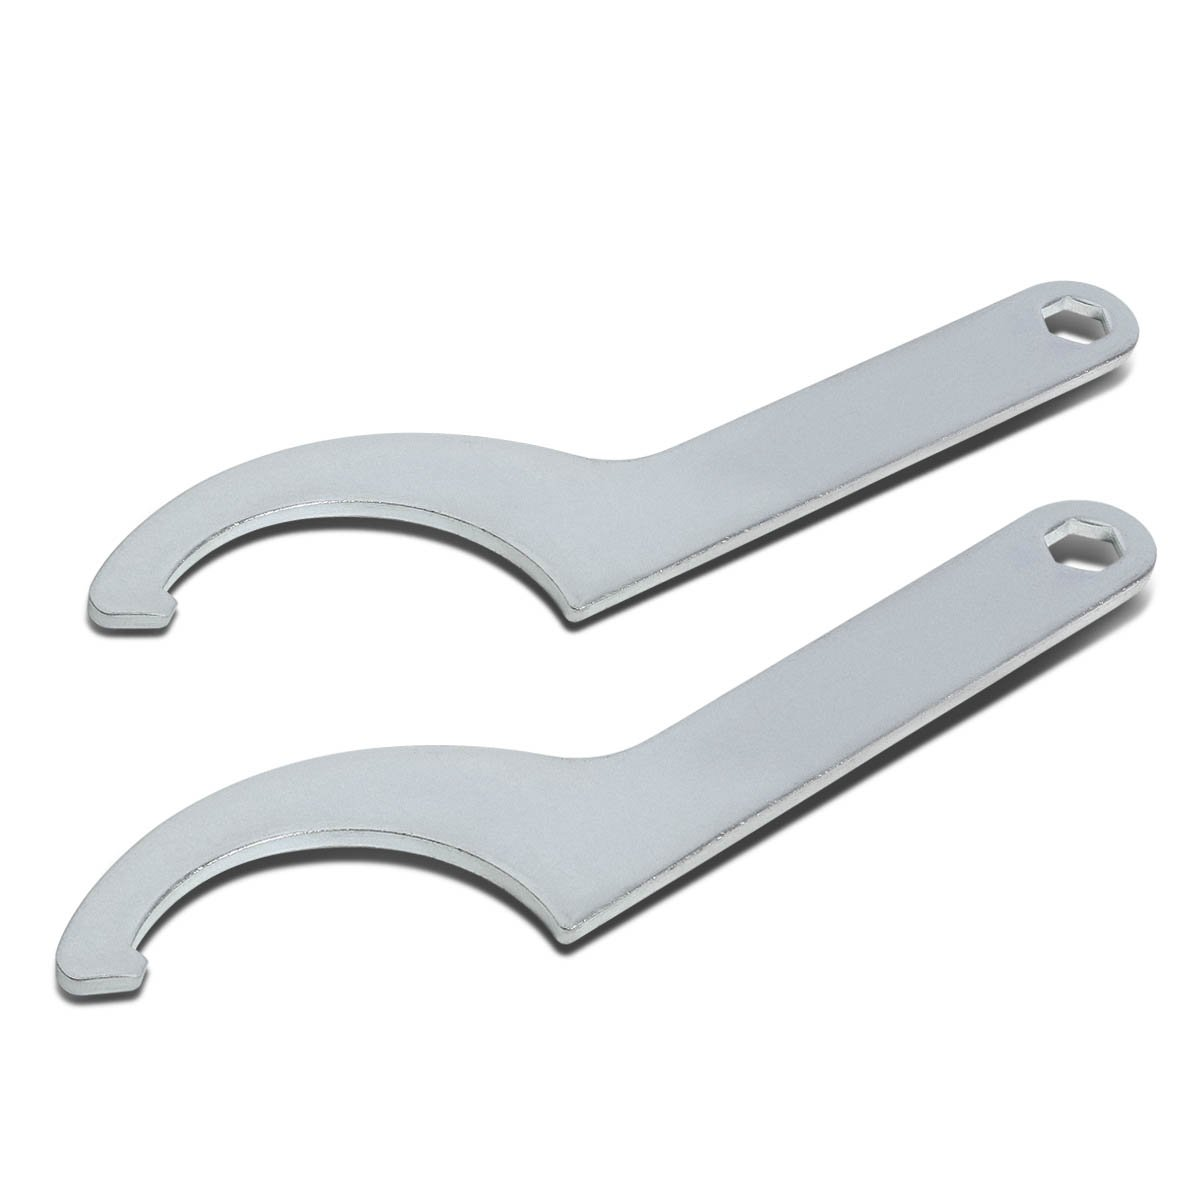 3'' Stainless Steel Coilover Adjustment Wrench Damper Shock Spring Spanner Tool (Pack of 2)